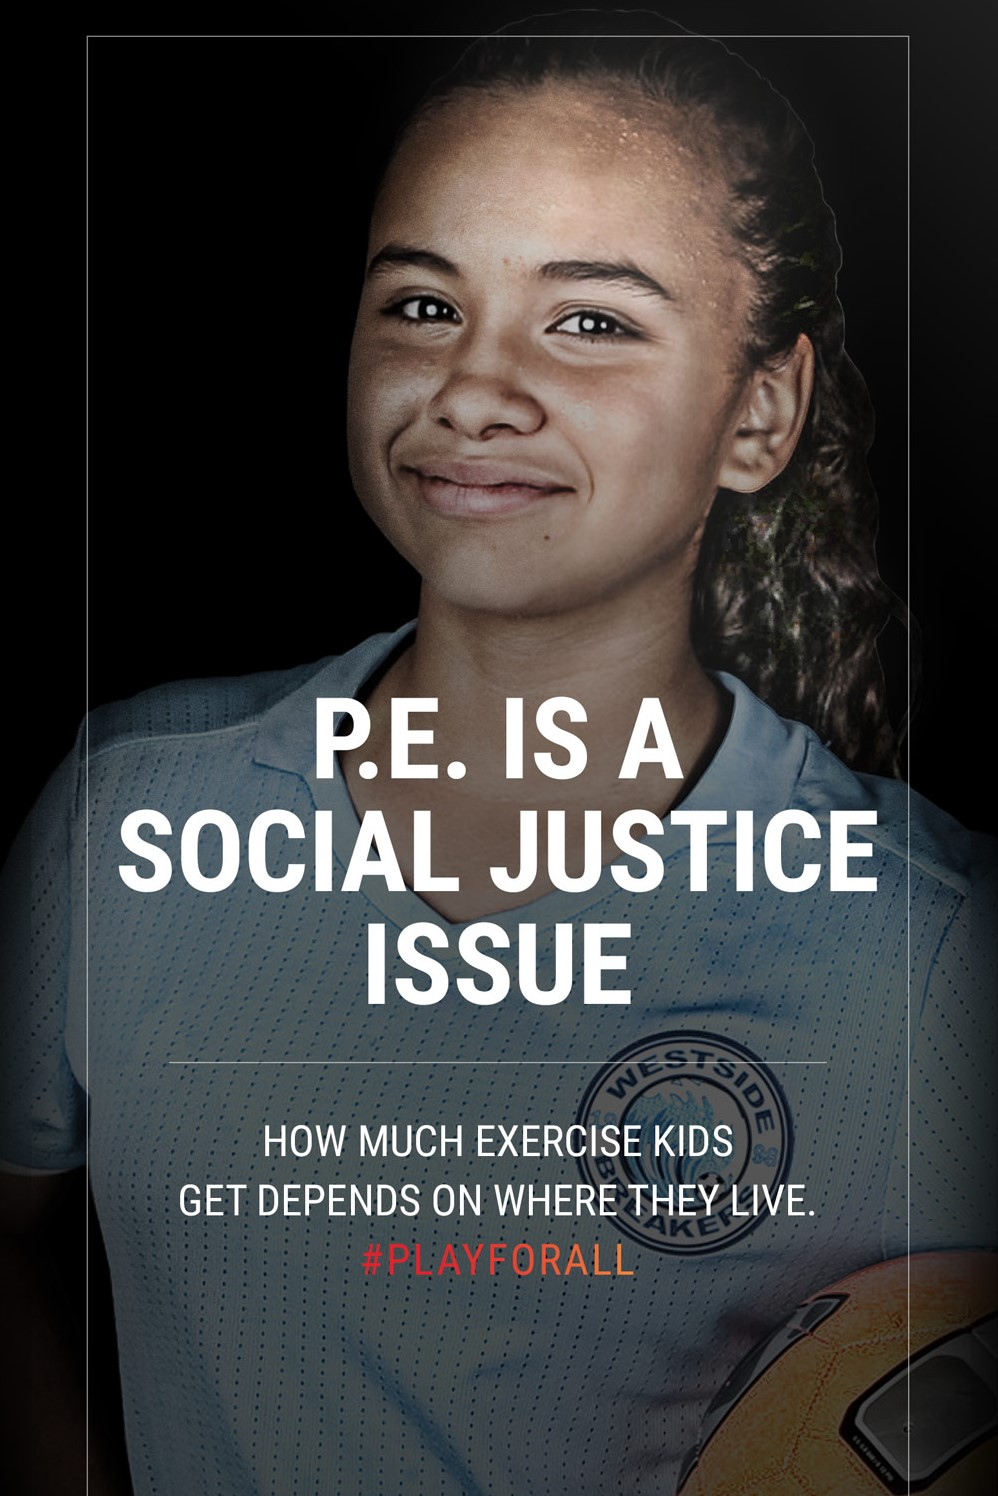 P.E.-Is-A-Social-Justice-Issue-9-28-17-website